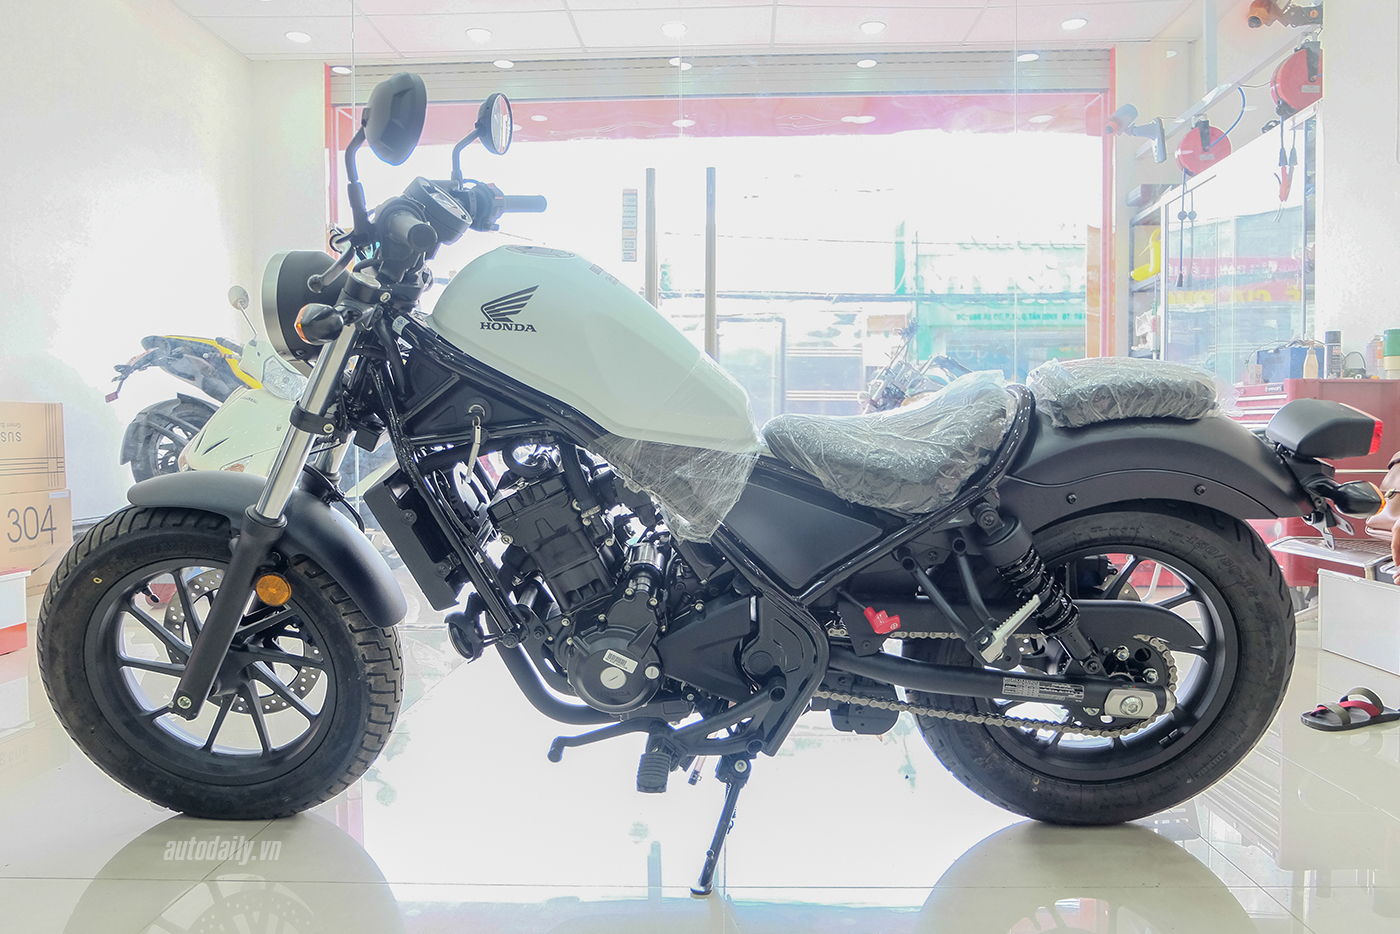 honda-rebel-300-abs-2017-17.jpg